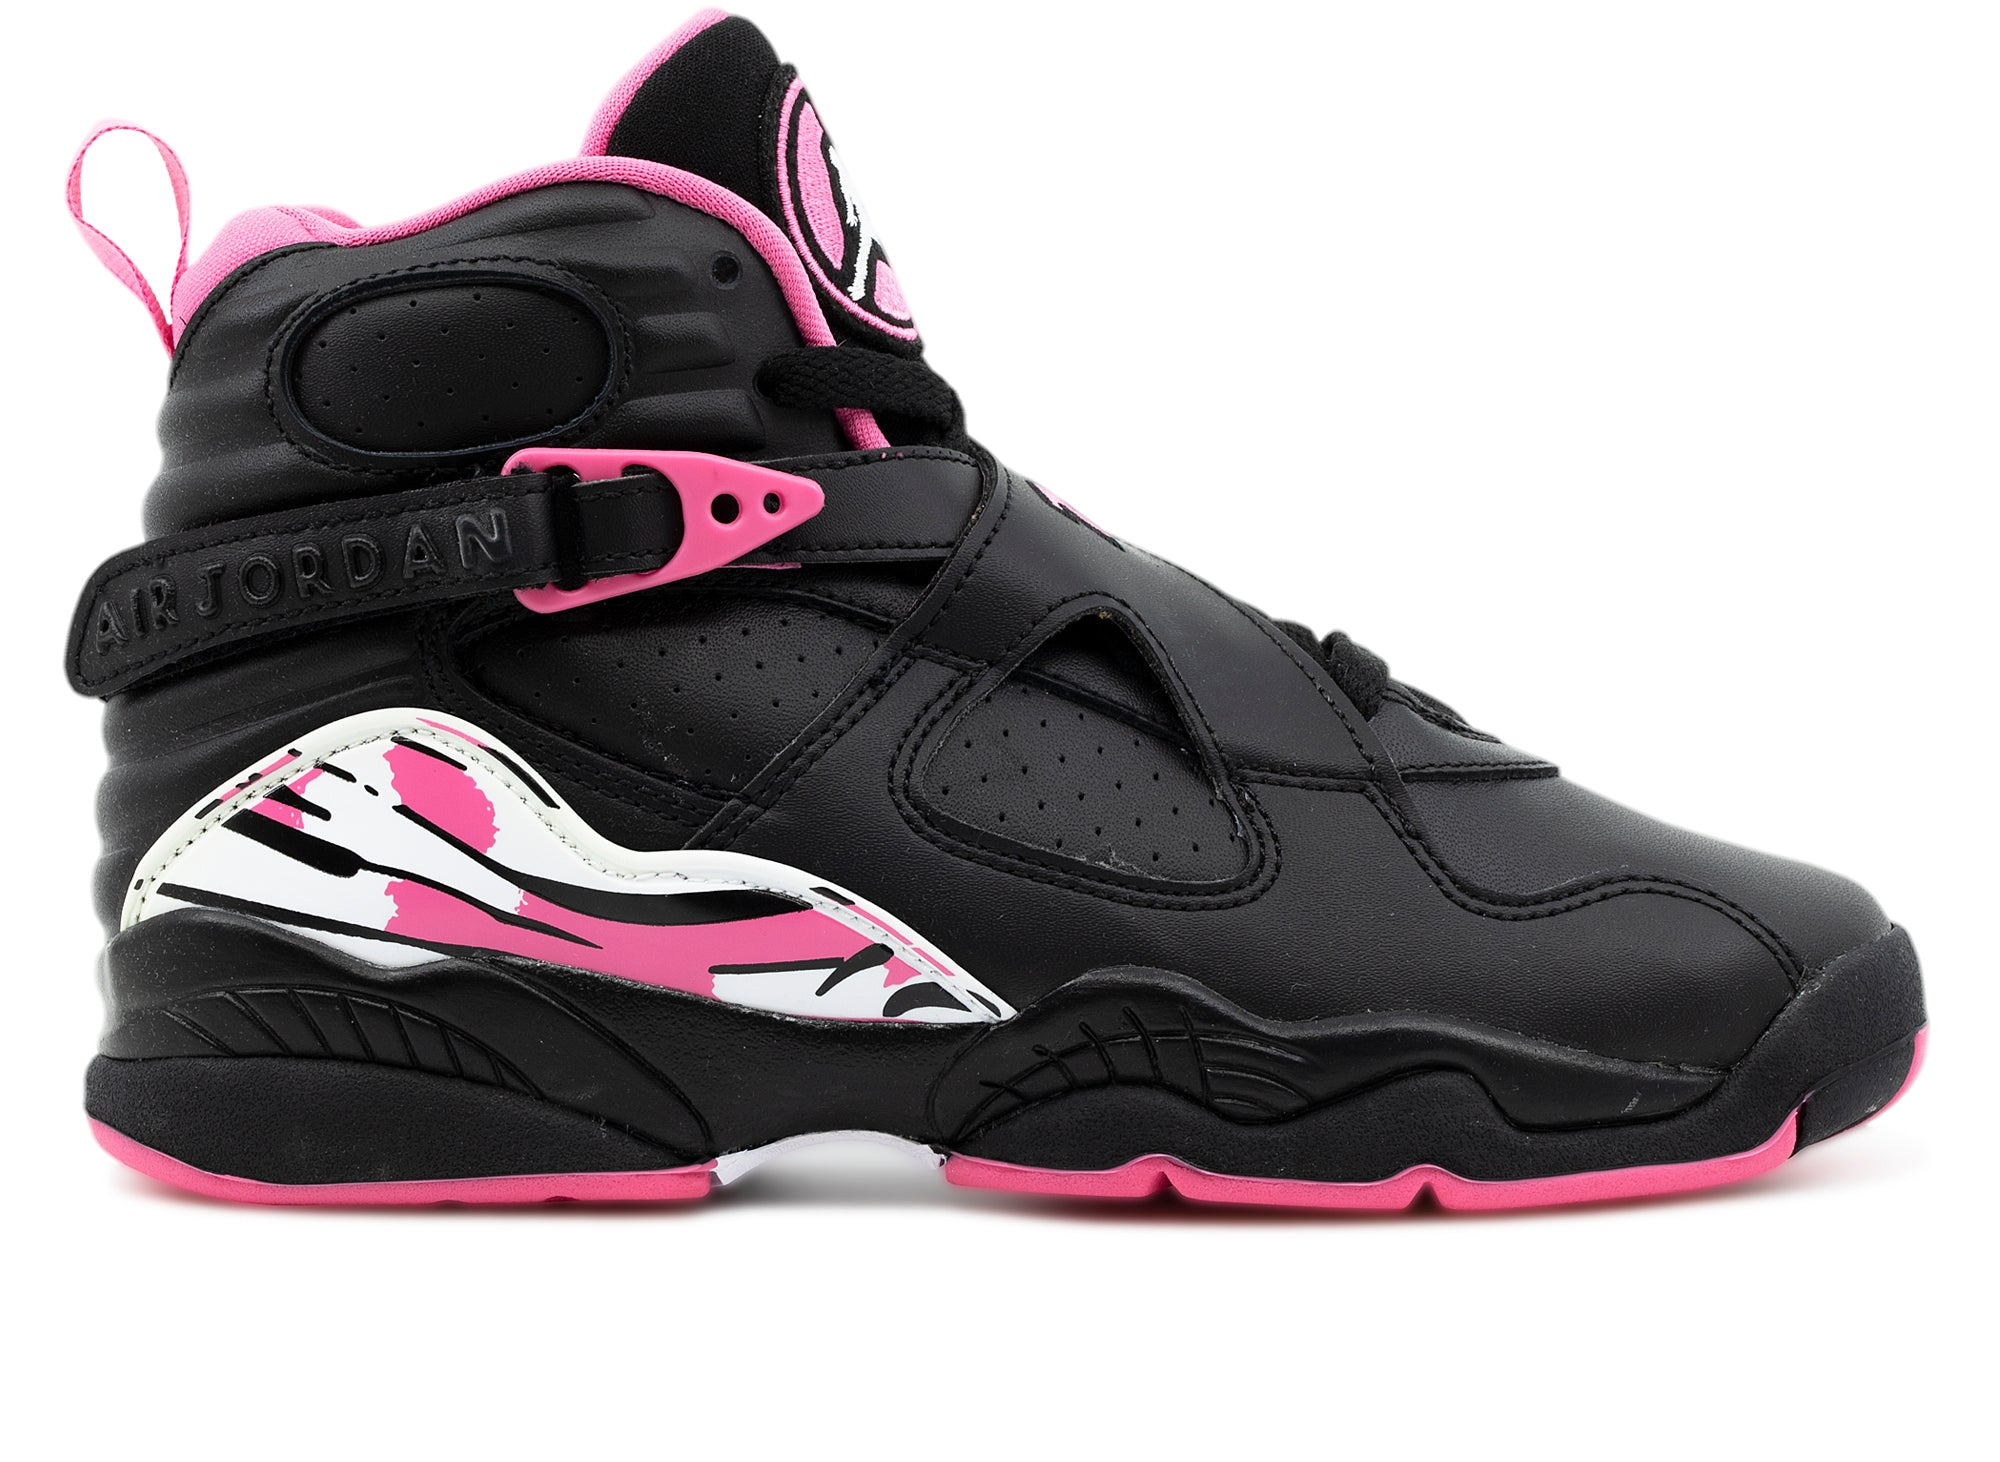 GS Air Jordan 8 Retro 'Pinksicle' xld